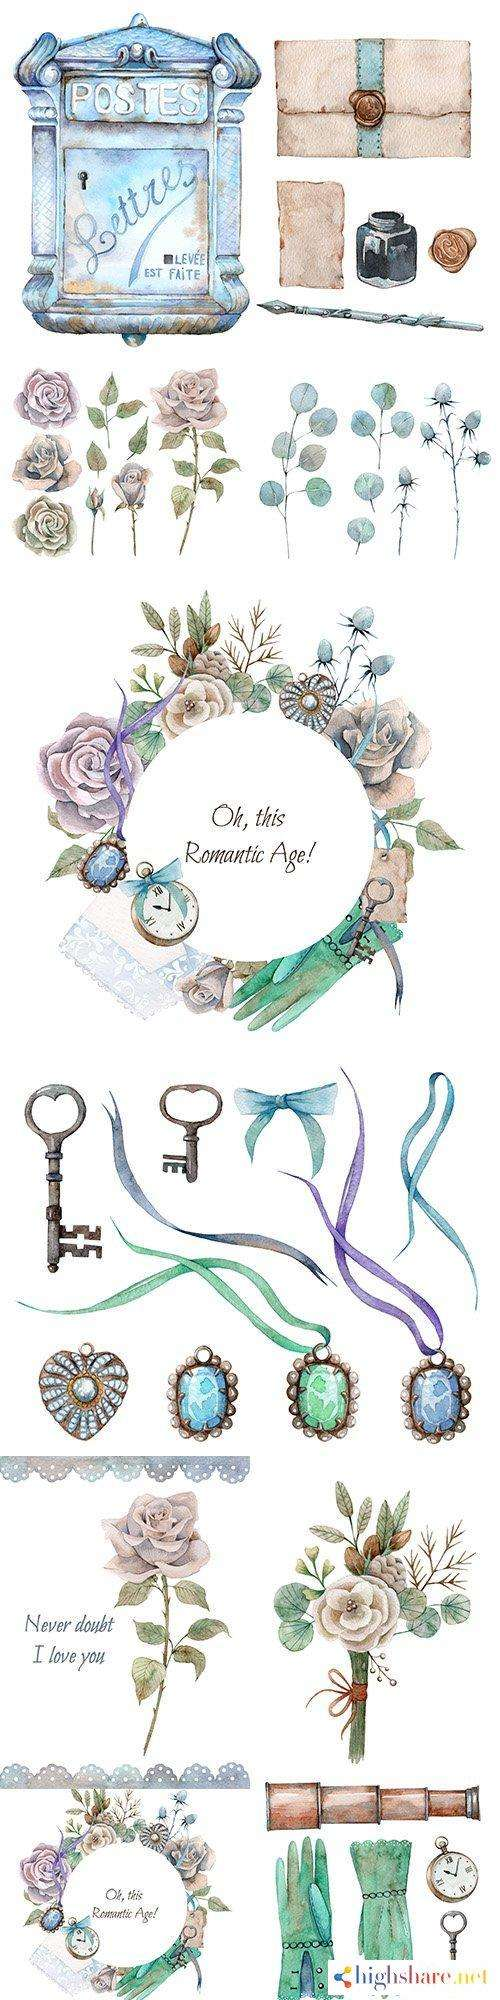 flowers decorations and ancient keys watercolor design 5f4e2e3eca936 - Flowers, decorations and ancient keys watercolor design